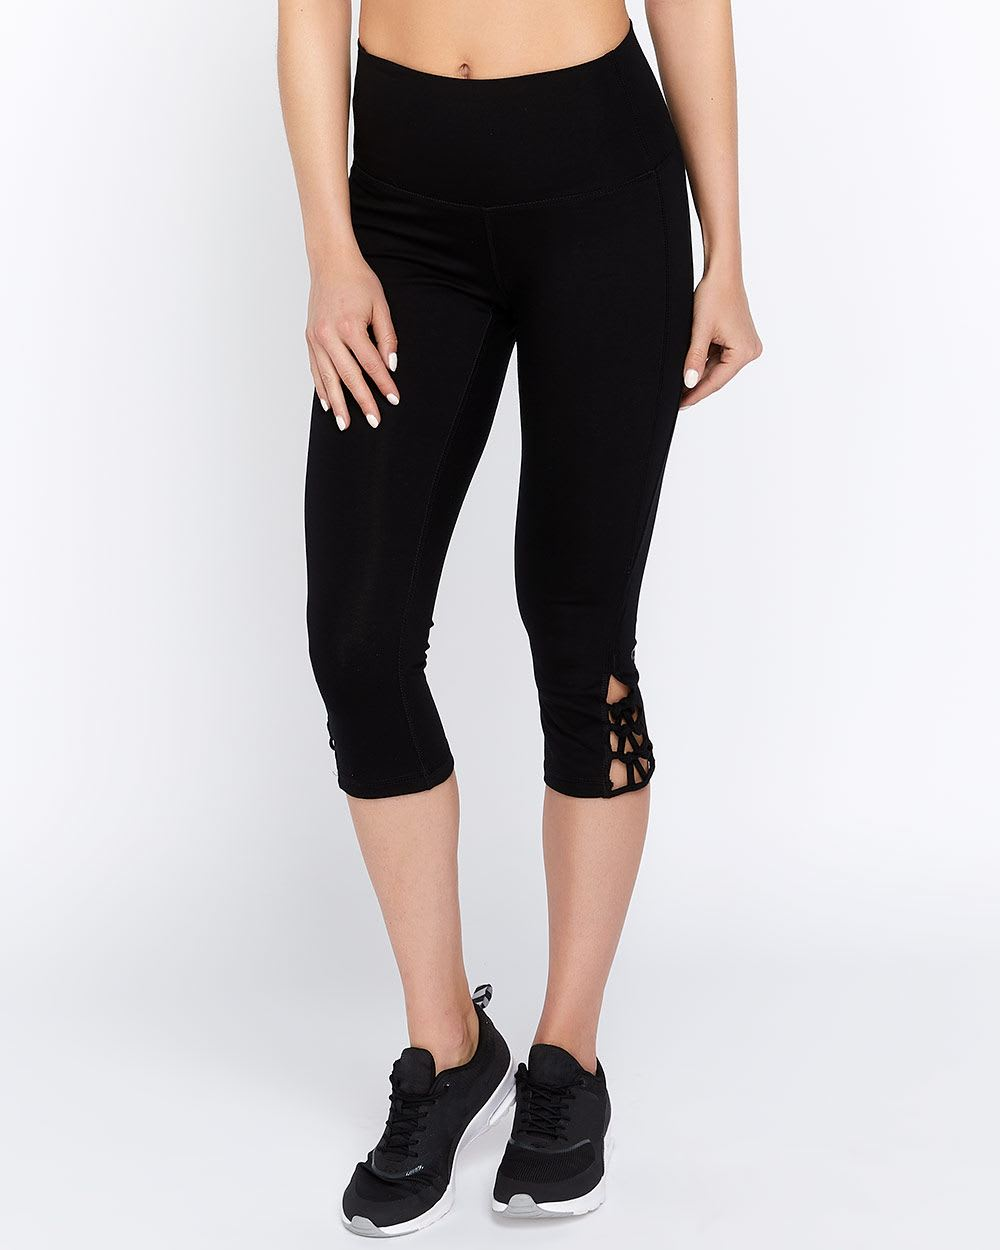 Hyba Lattice Capri Legging